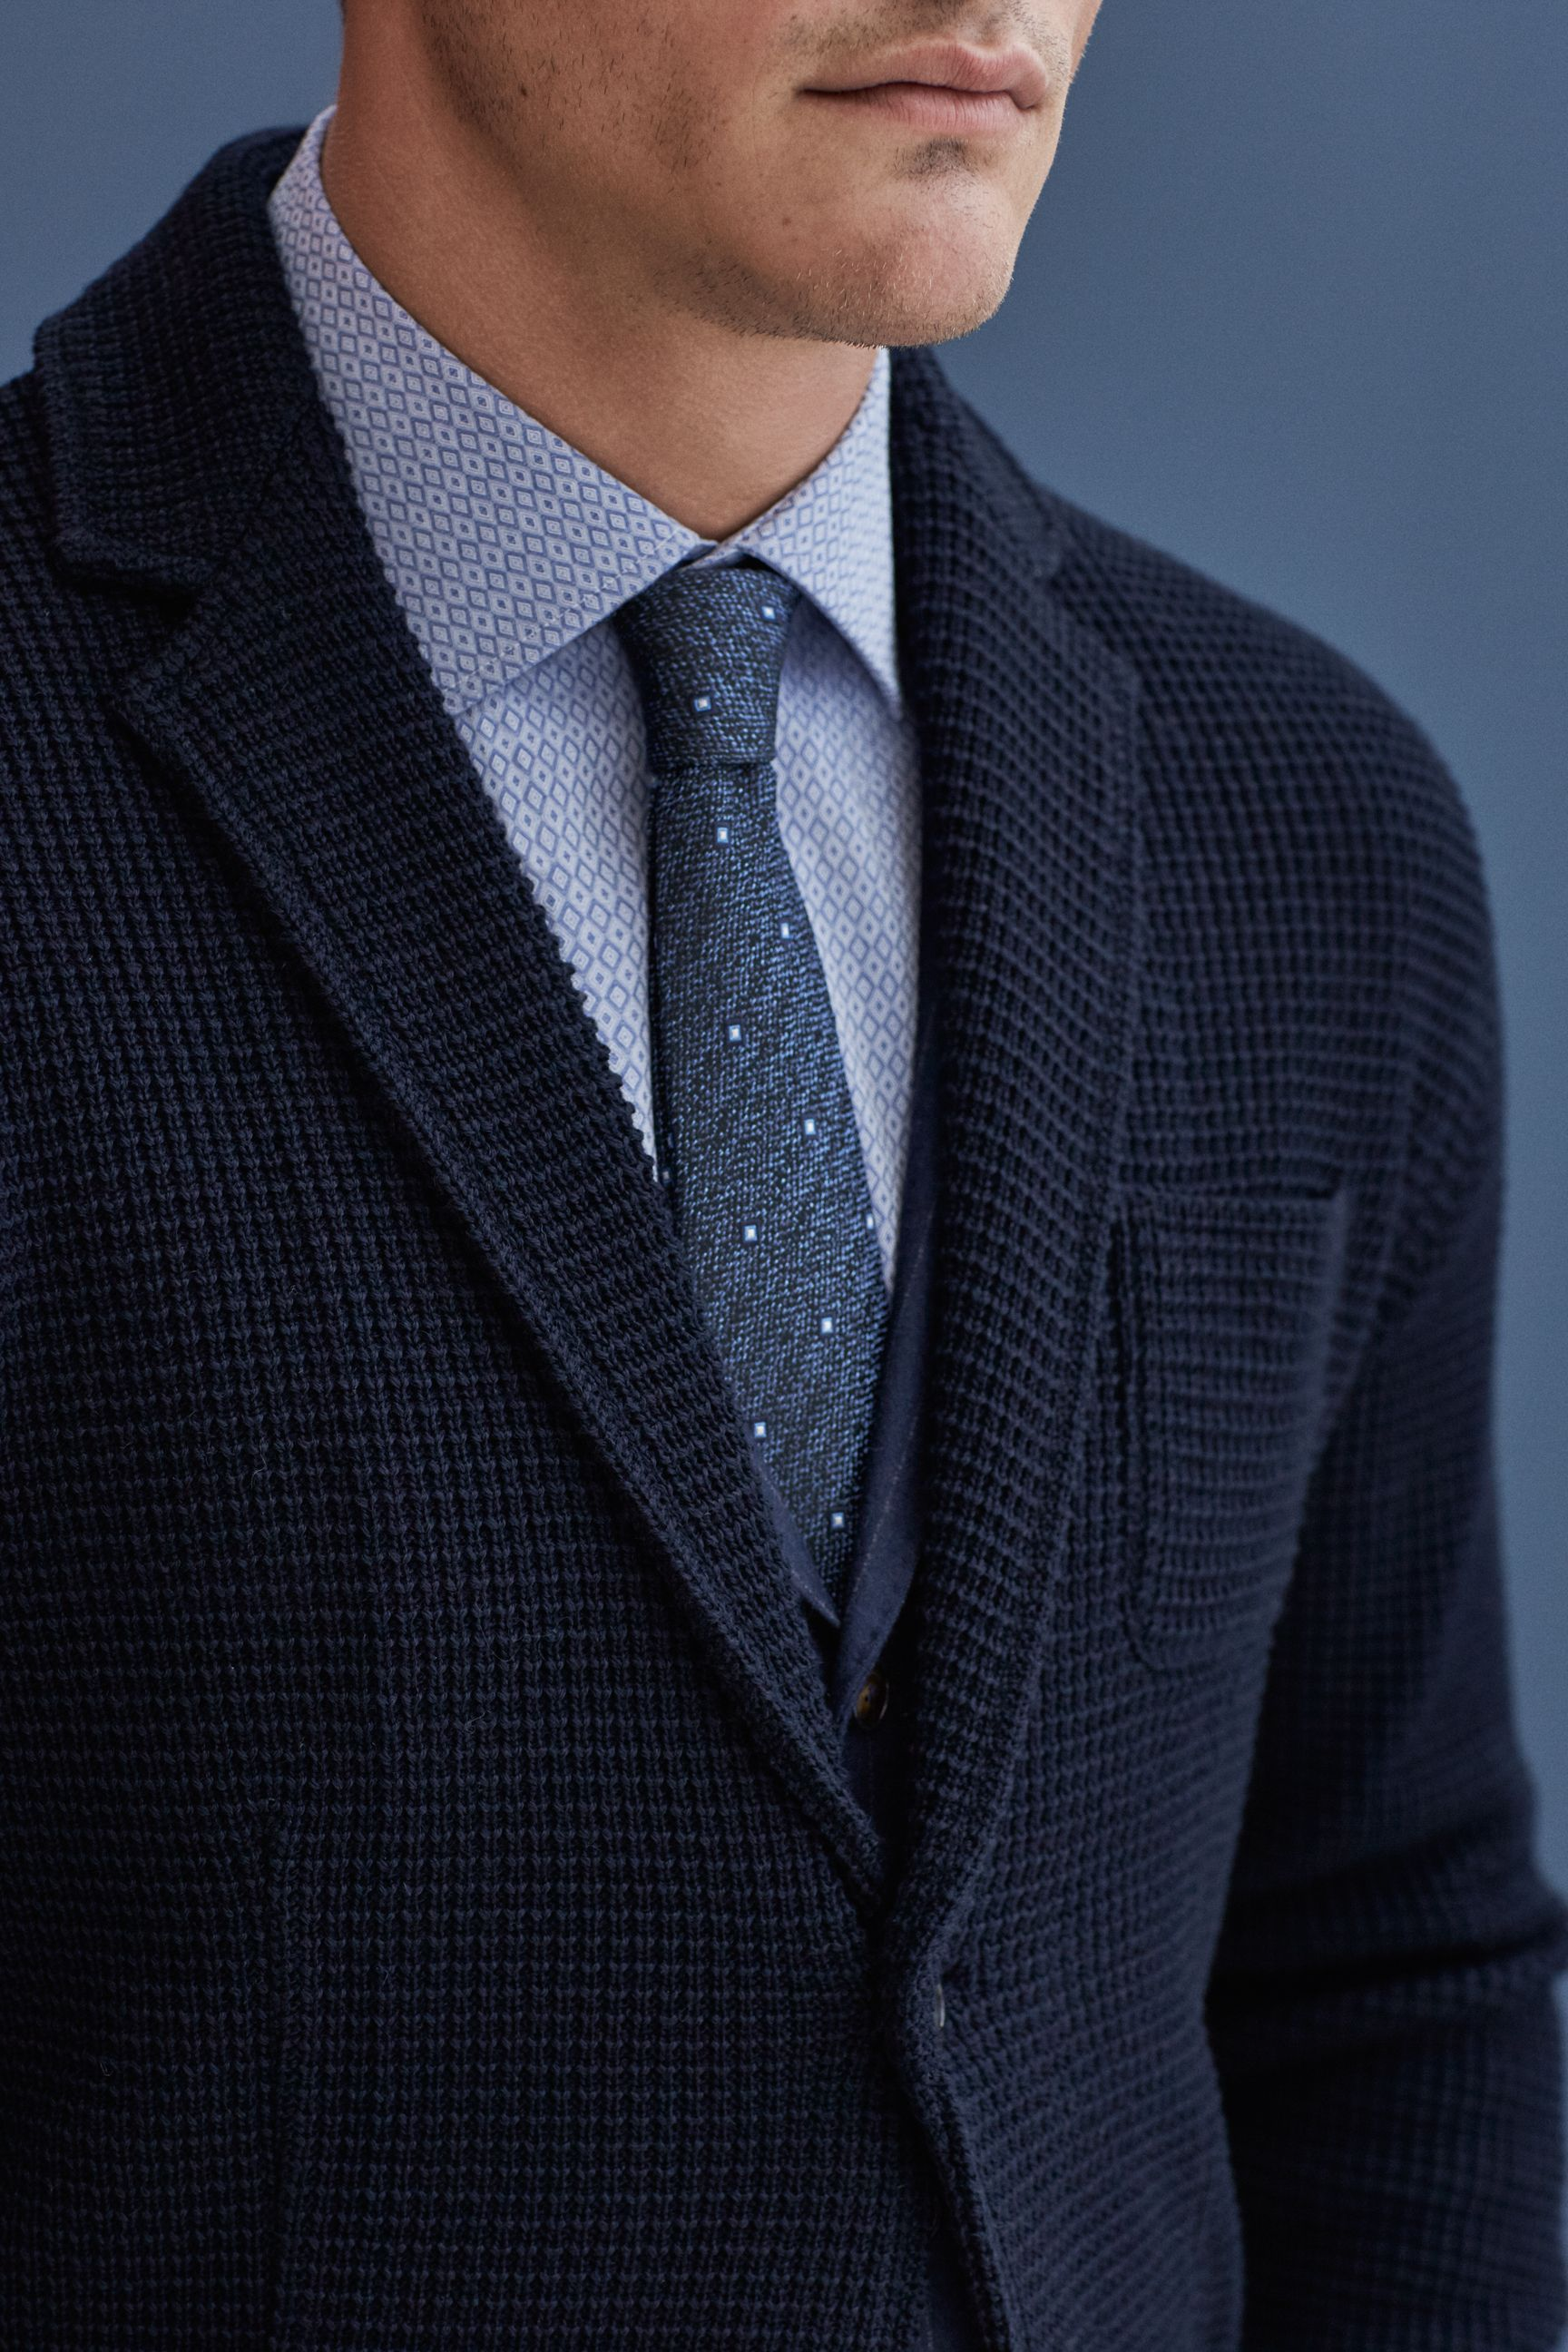 BUGATTI SPRING/SUMMER 2016 | A stylish tie is all you need.